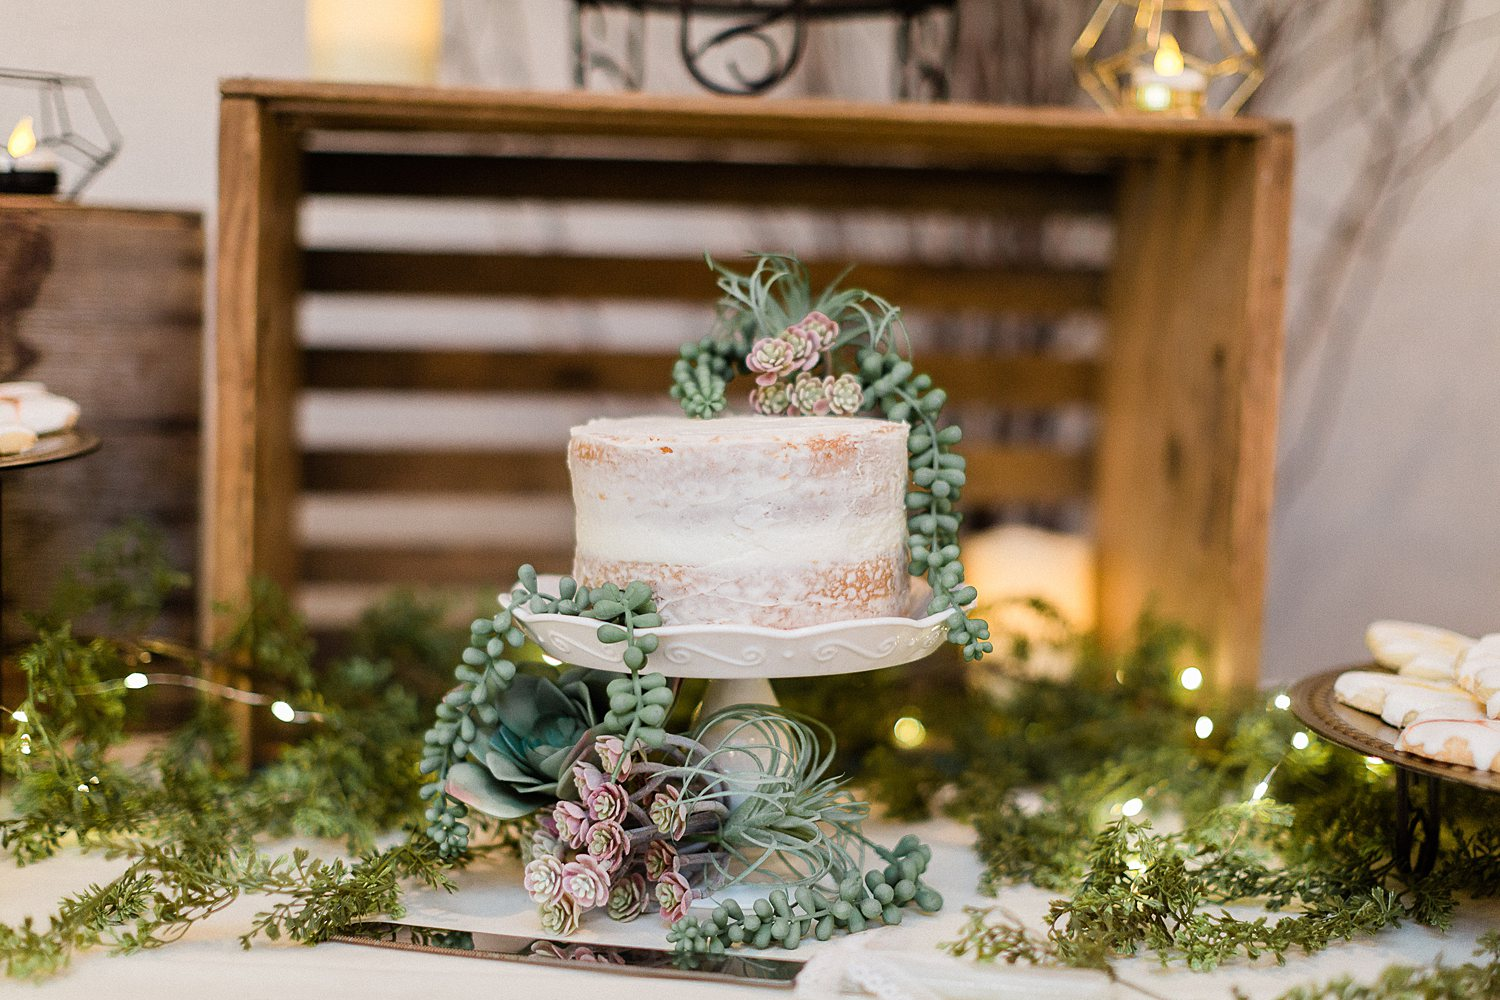 North_Central_Wisconsin_Event_Wedding_Venues_Fall_Weddings_The_Bailiwick_Venue_James-Stokes-Photography060.jpg